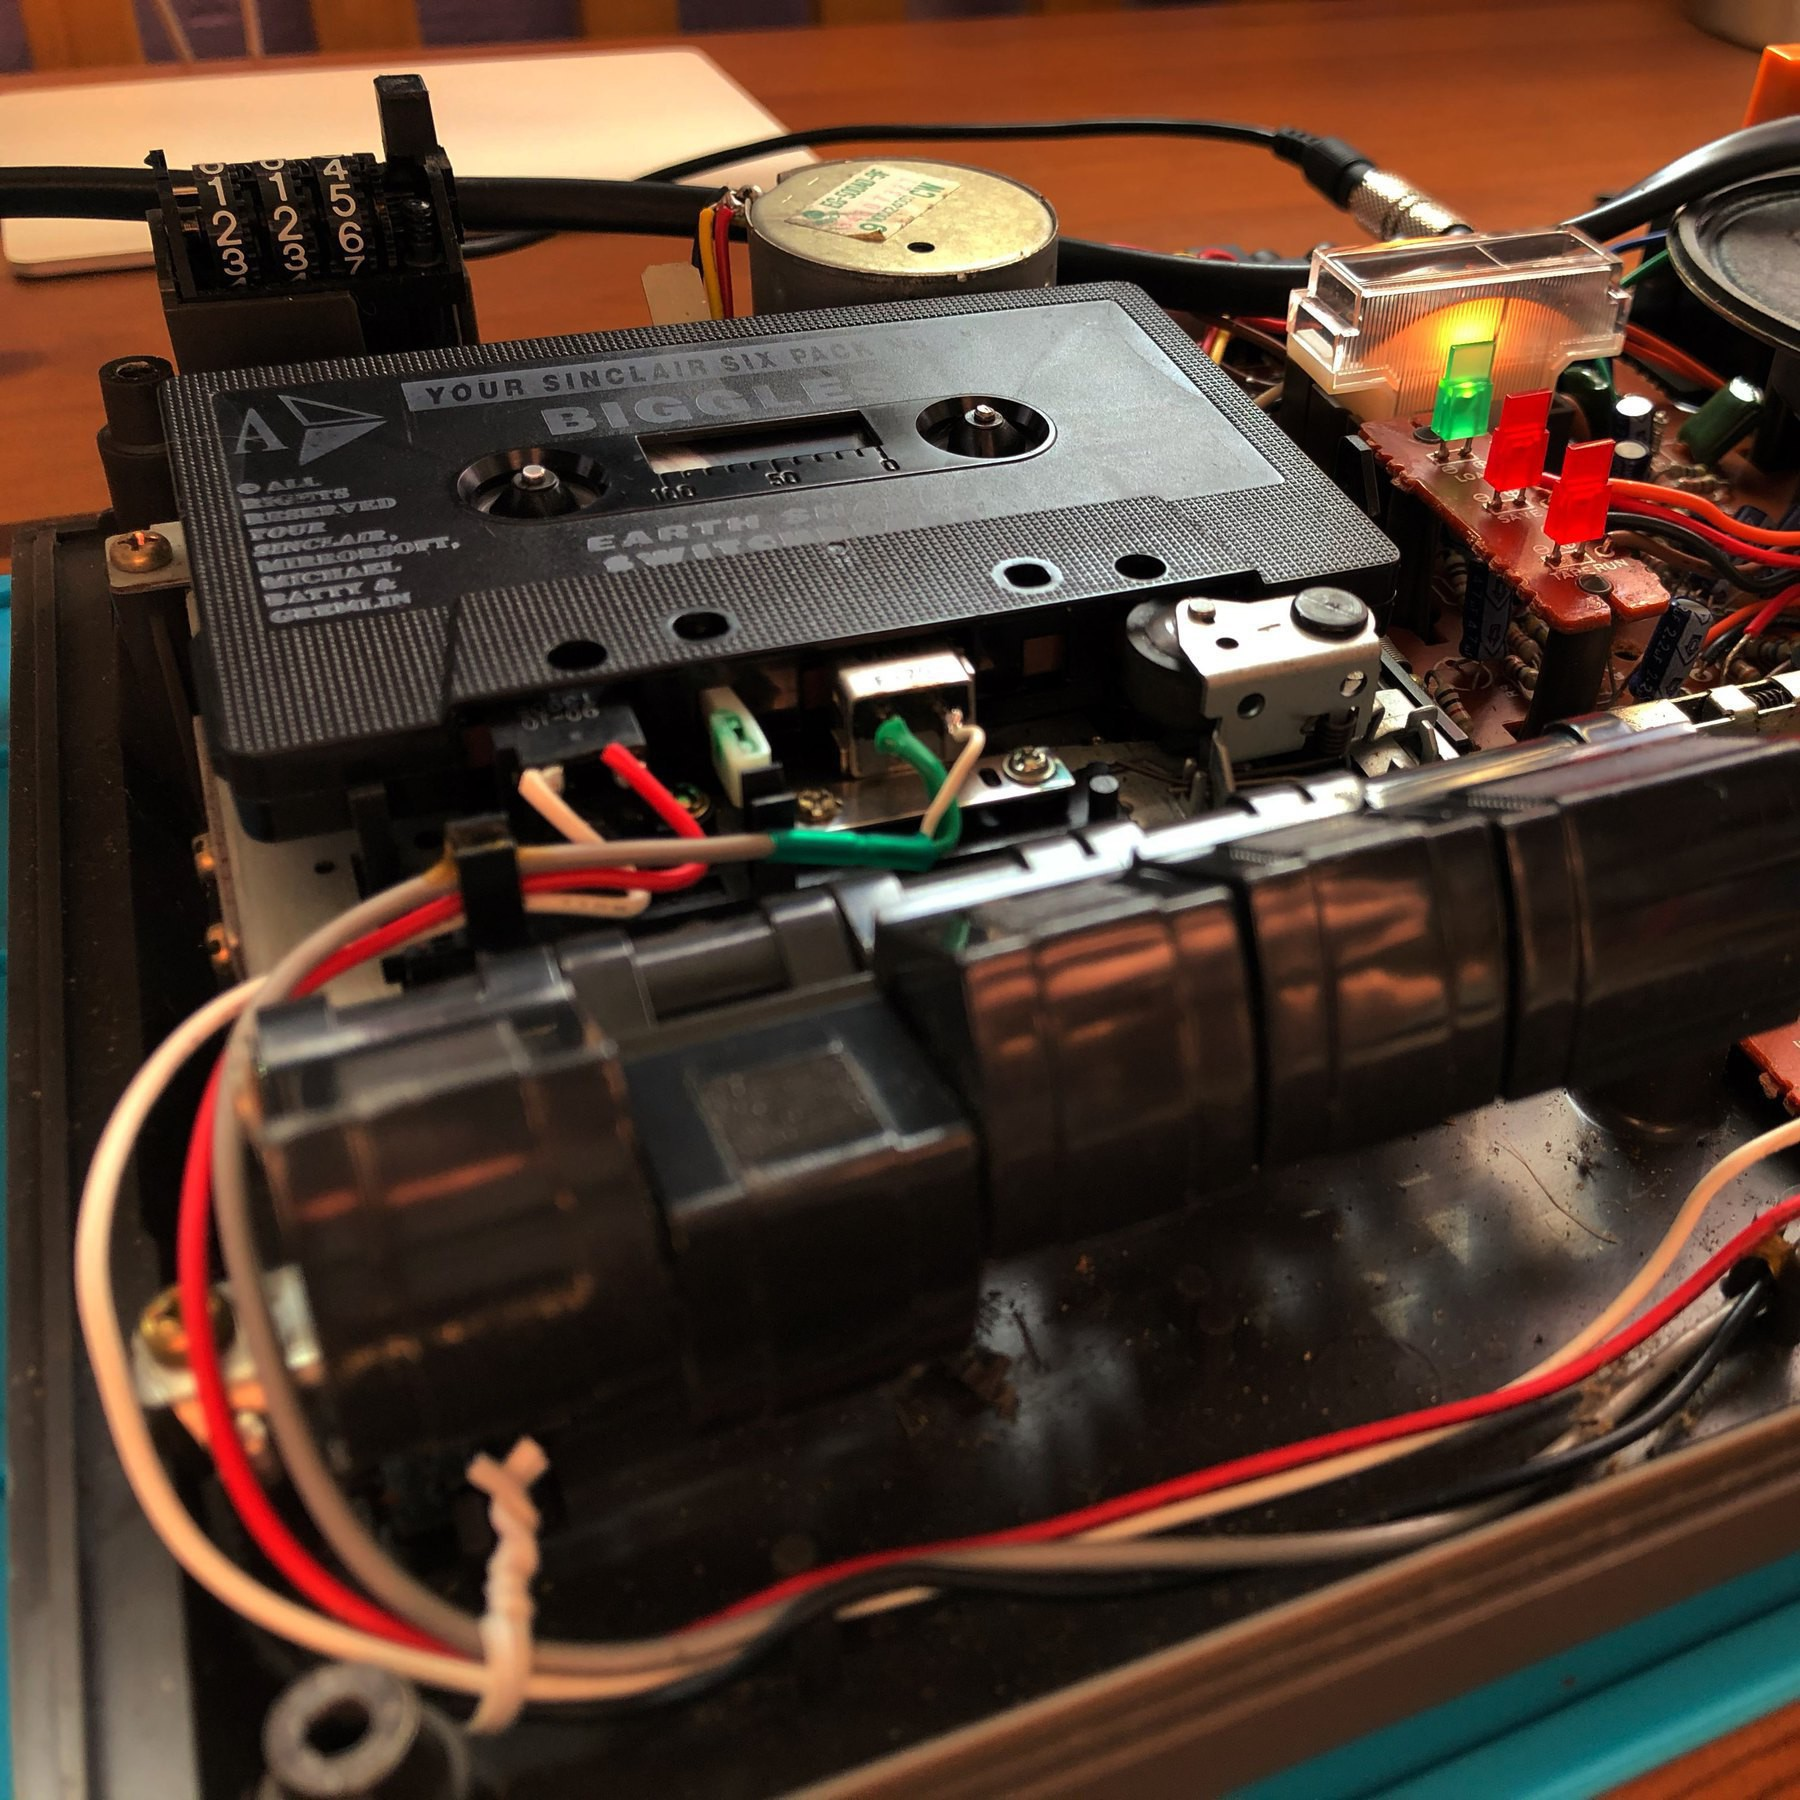 disassembled cassette player